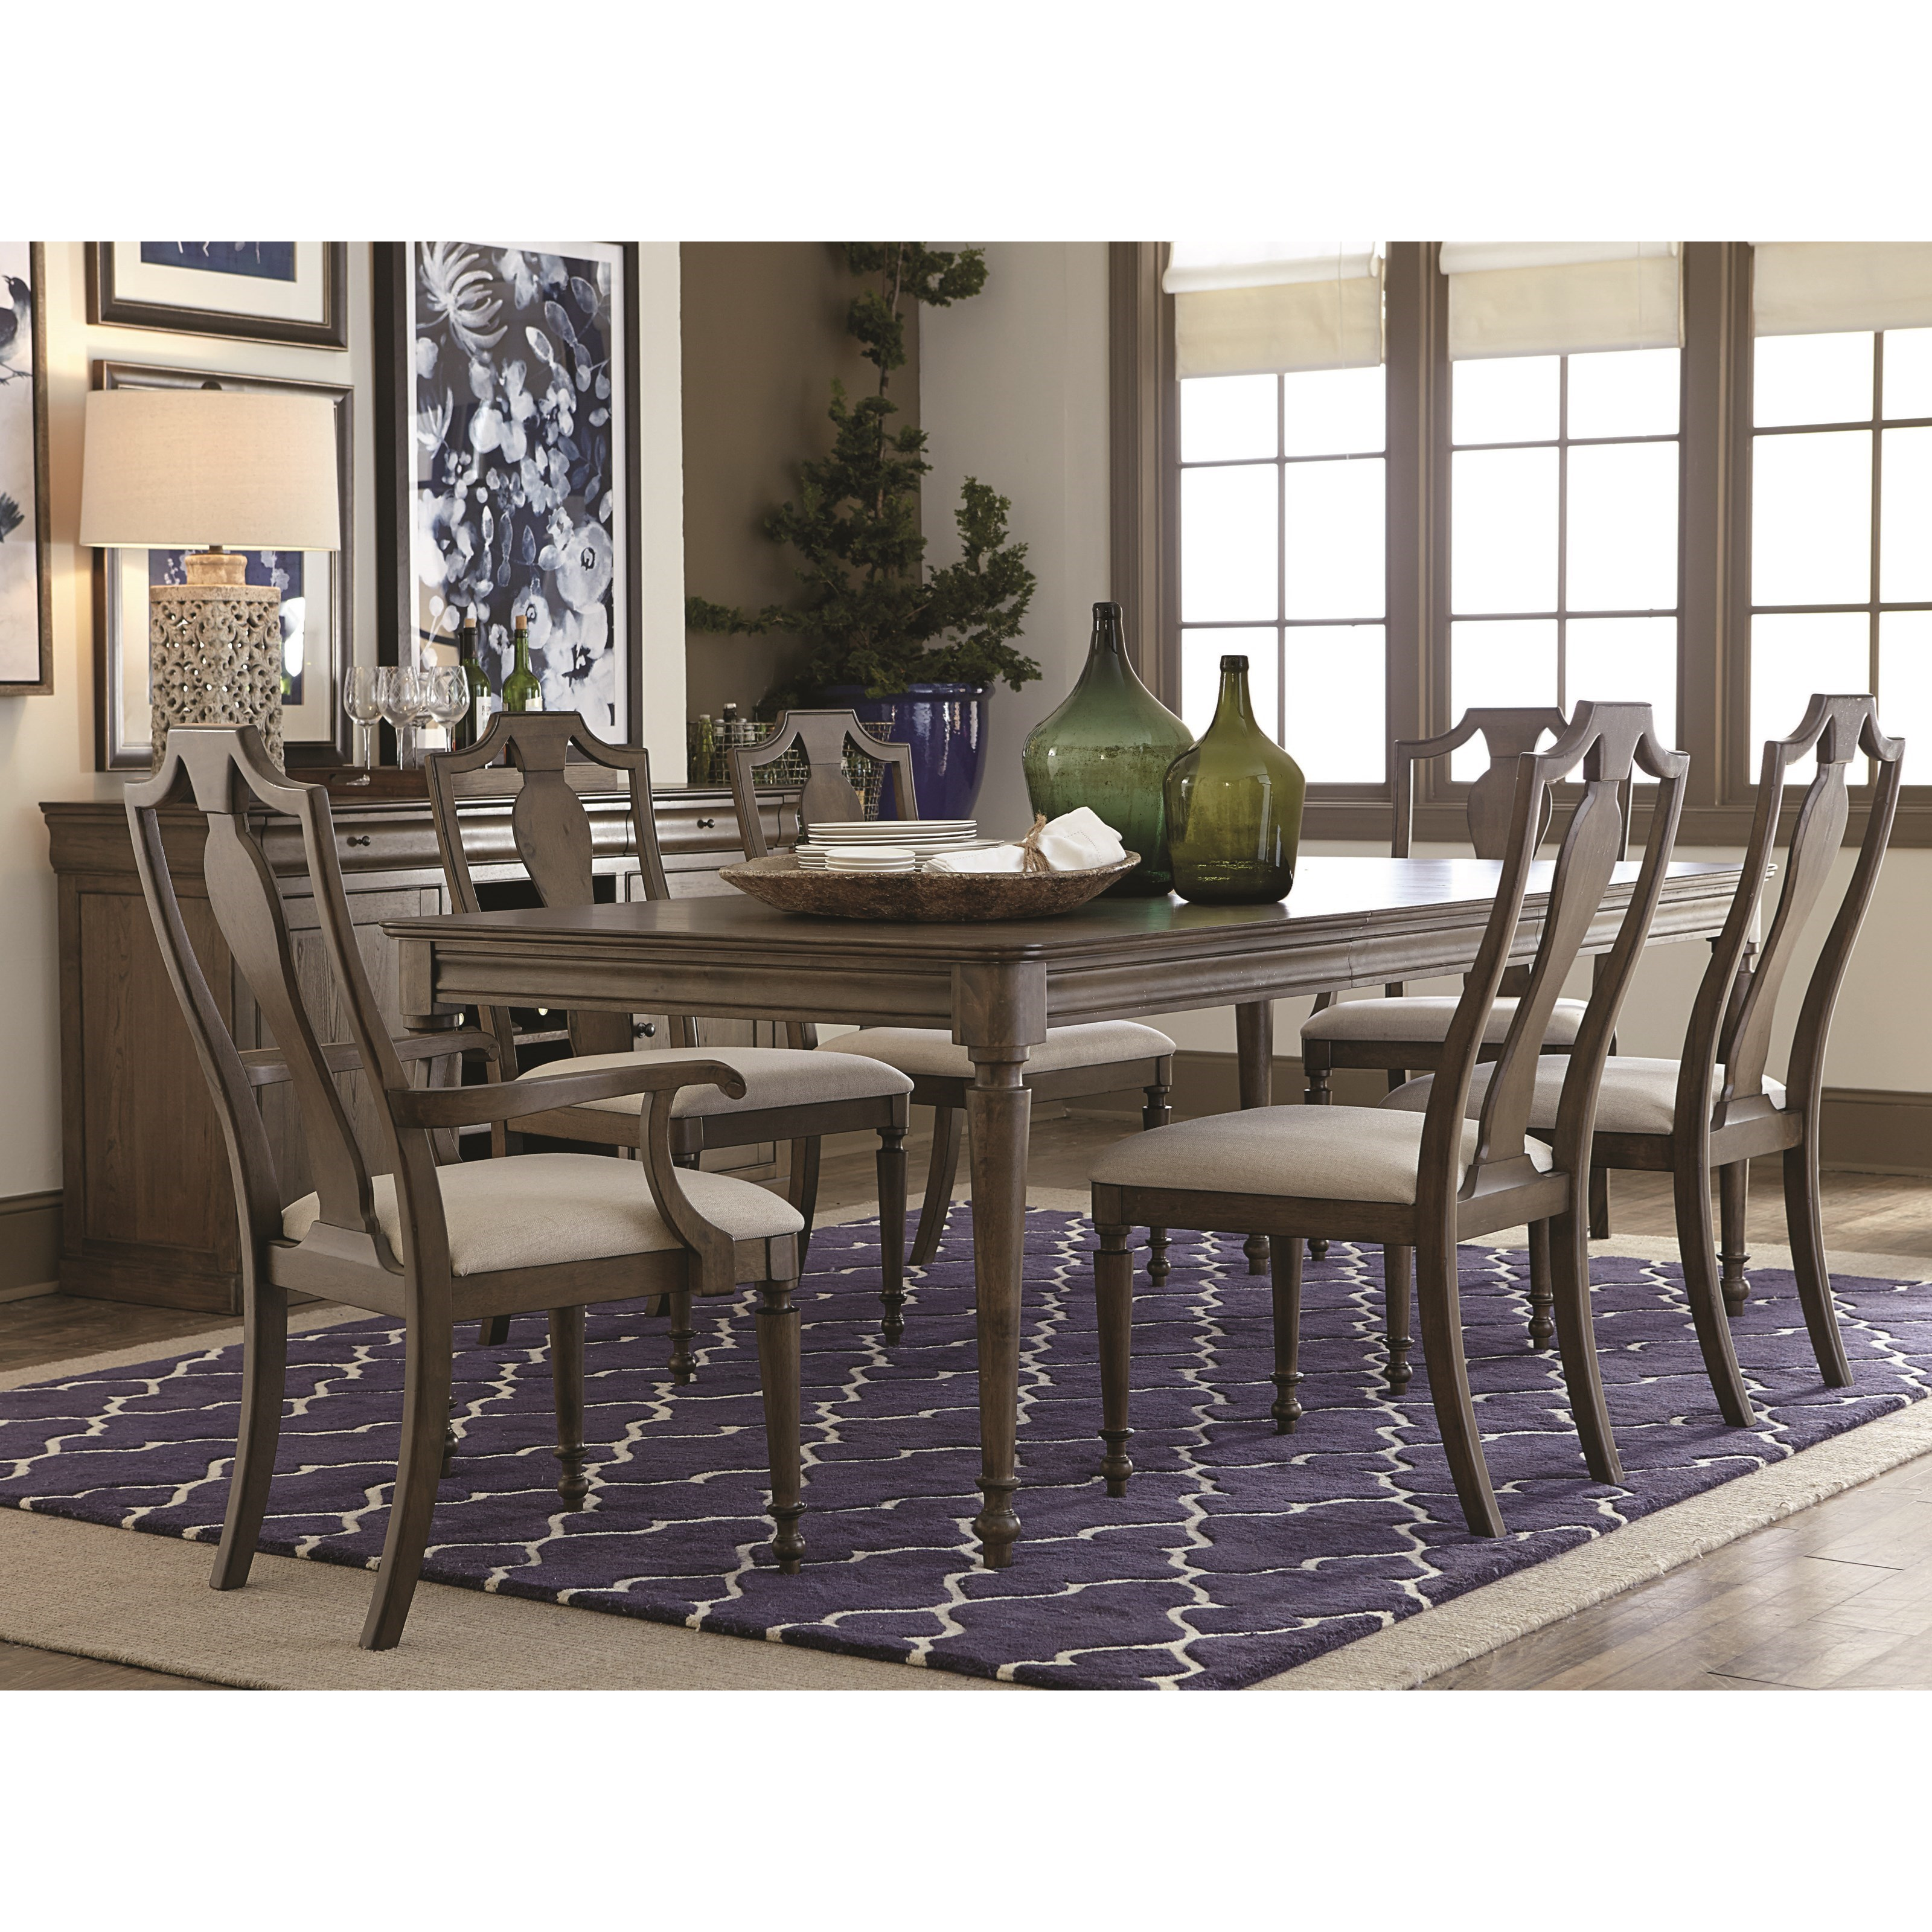 Formal Dining Table Set: Bassett Provence Formal Dining Table And Chair Set